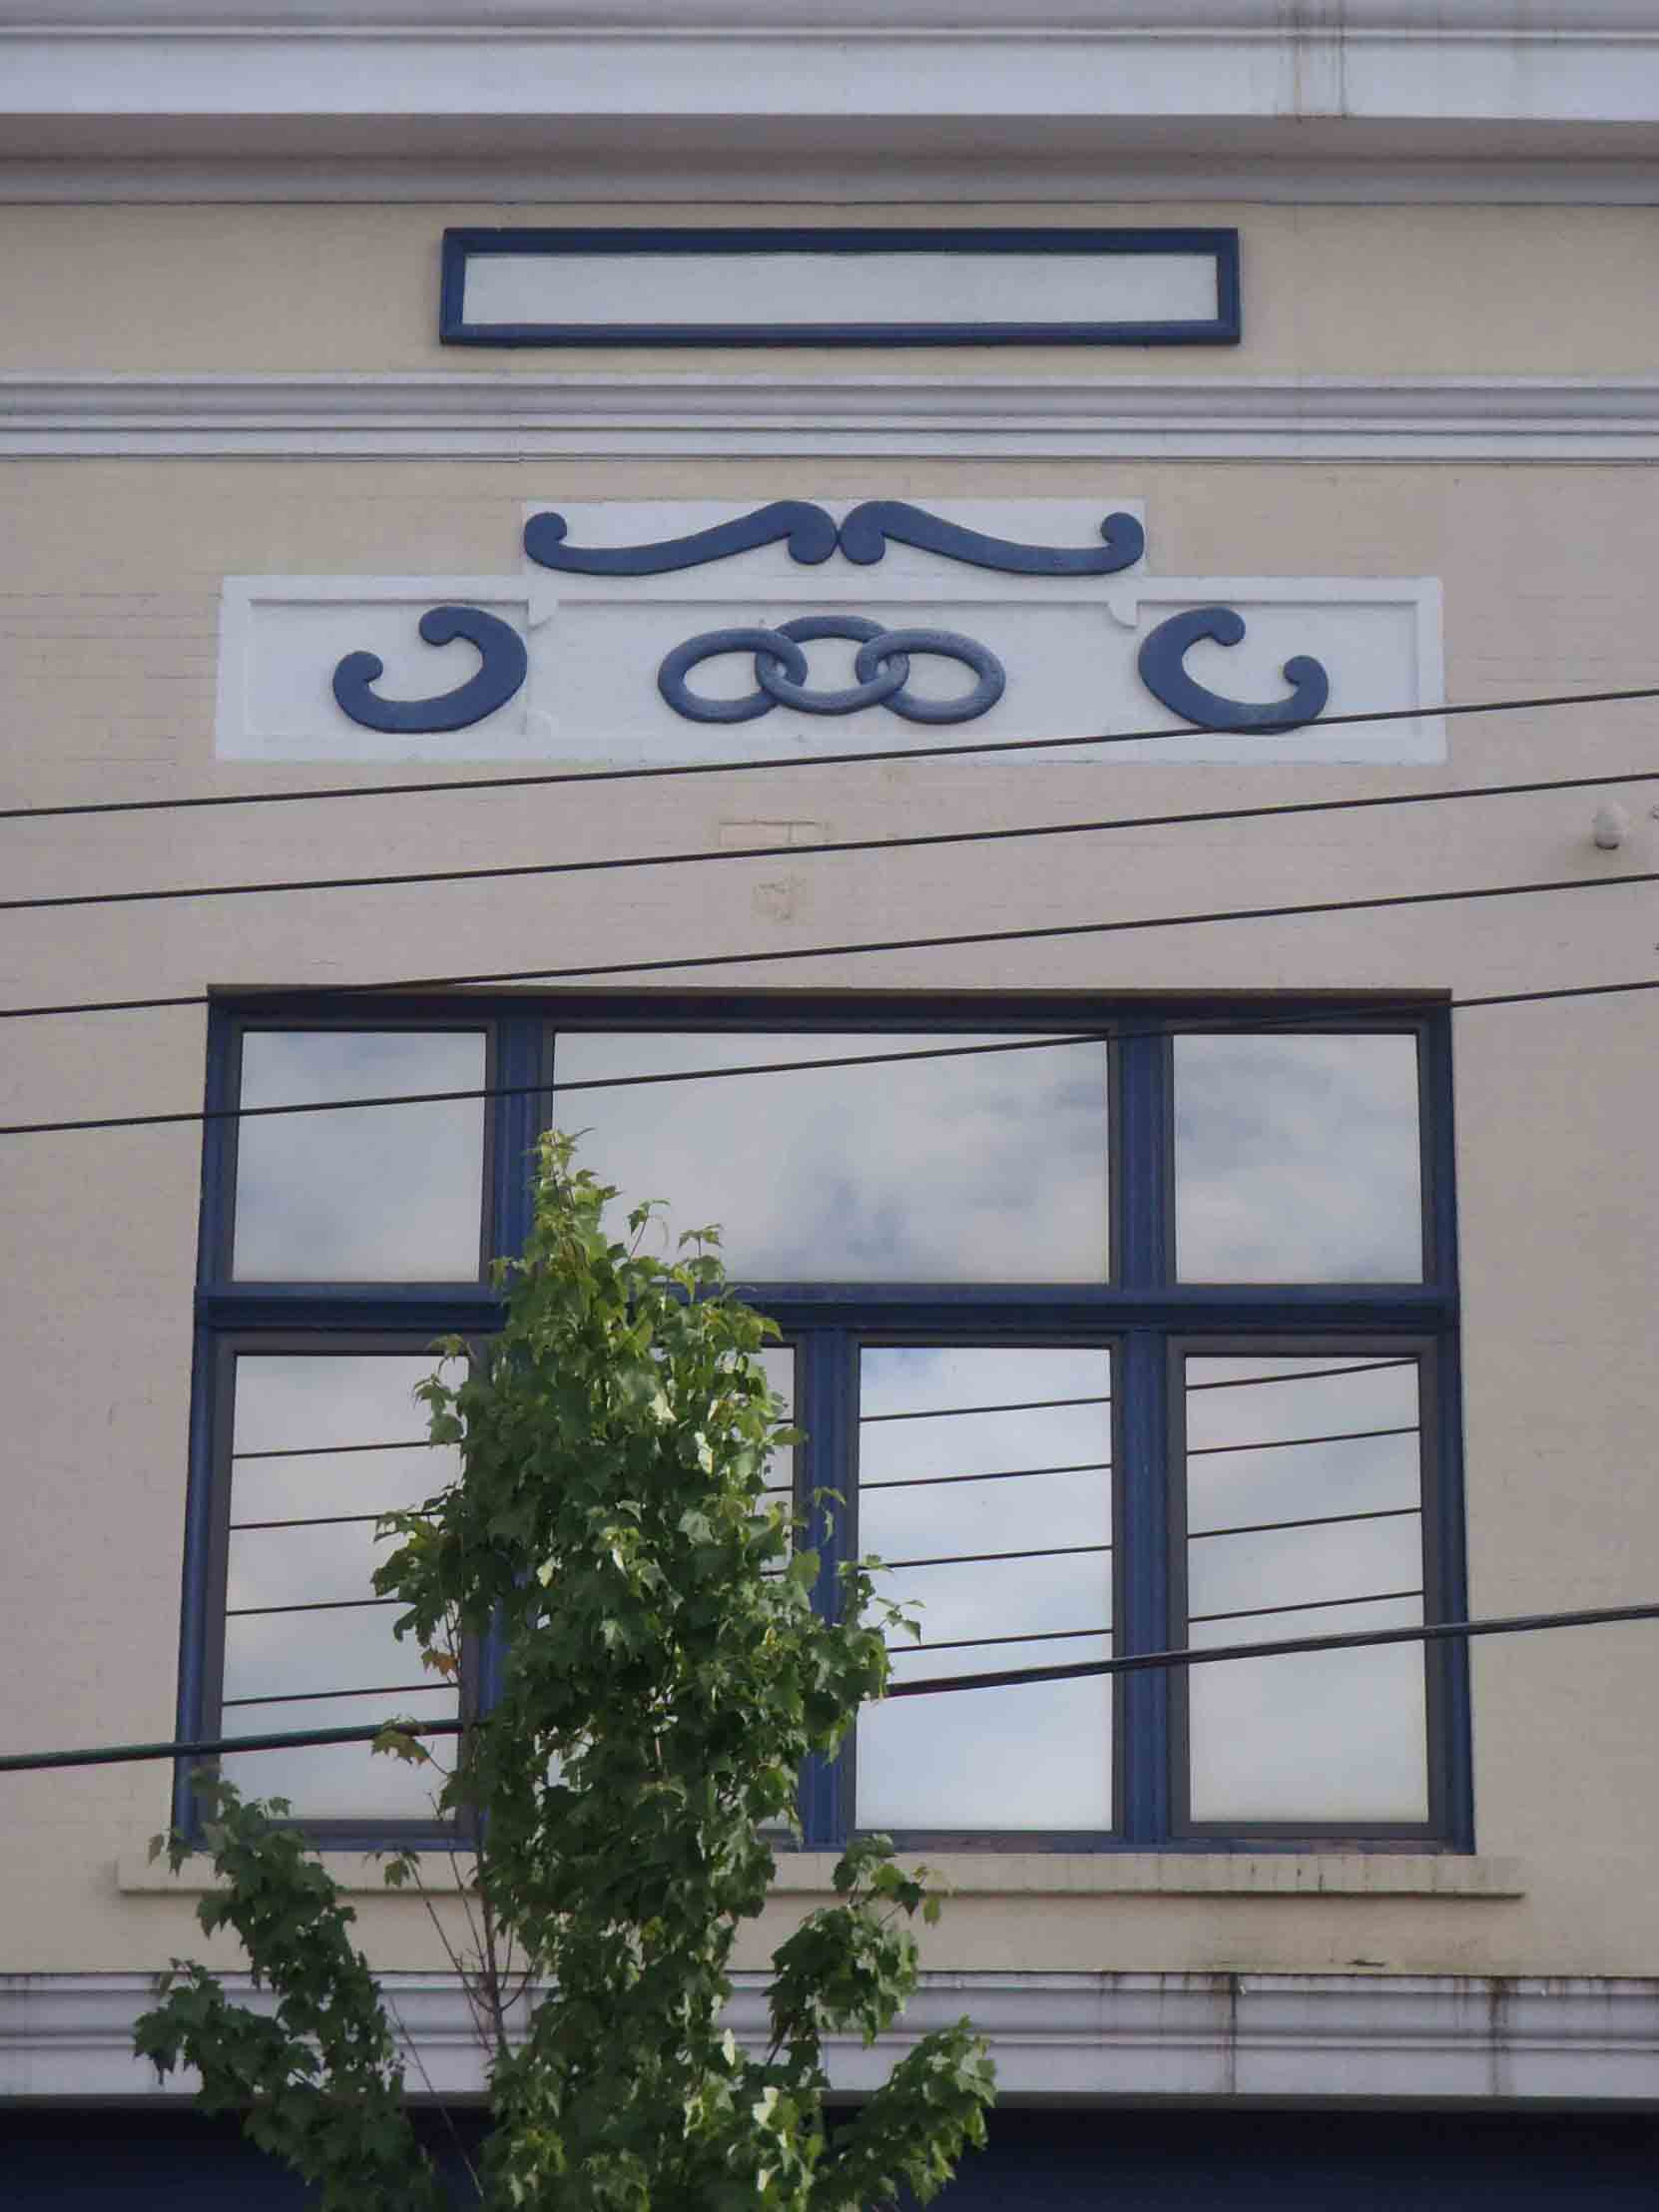 The I.O.O.F. three ring symbol is still visible on the Station Street facade of the Whittome Building